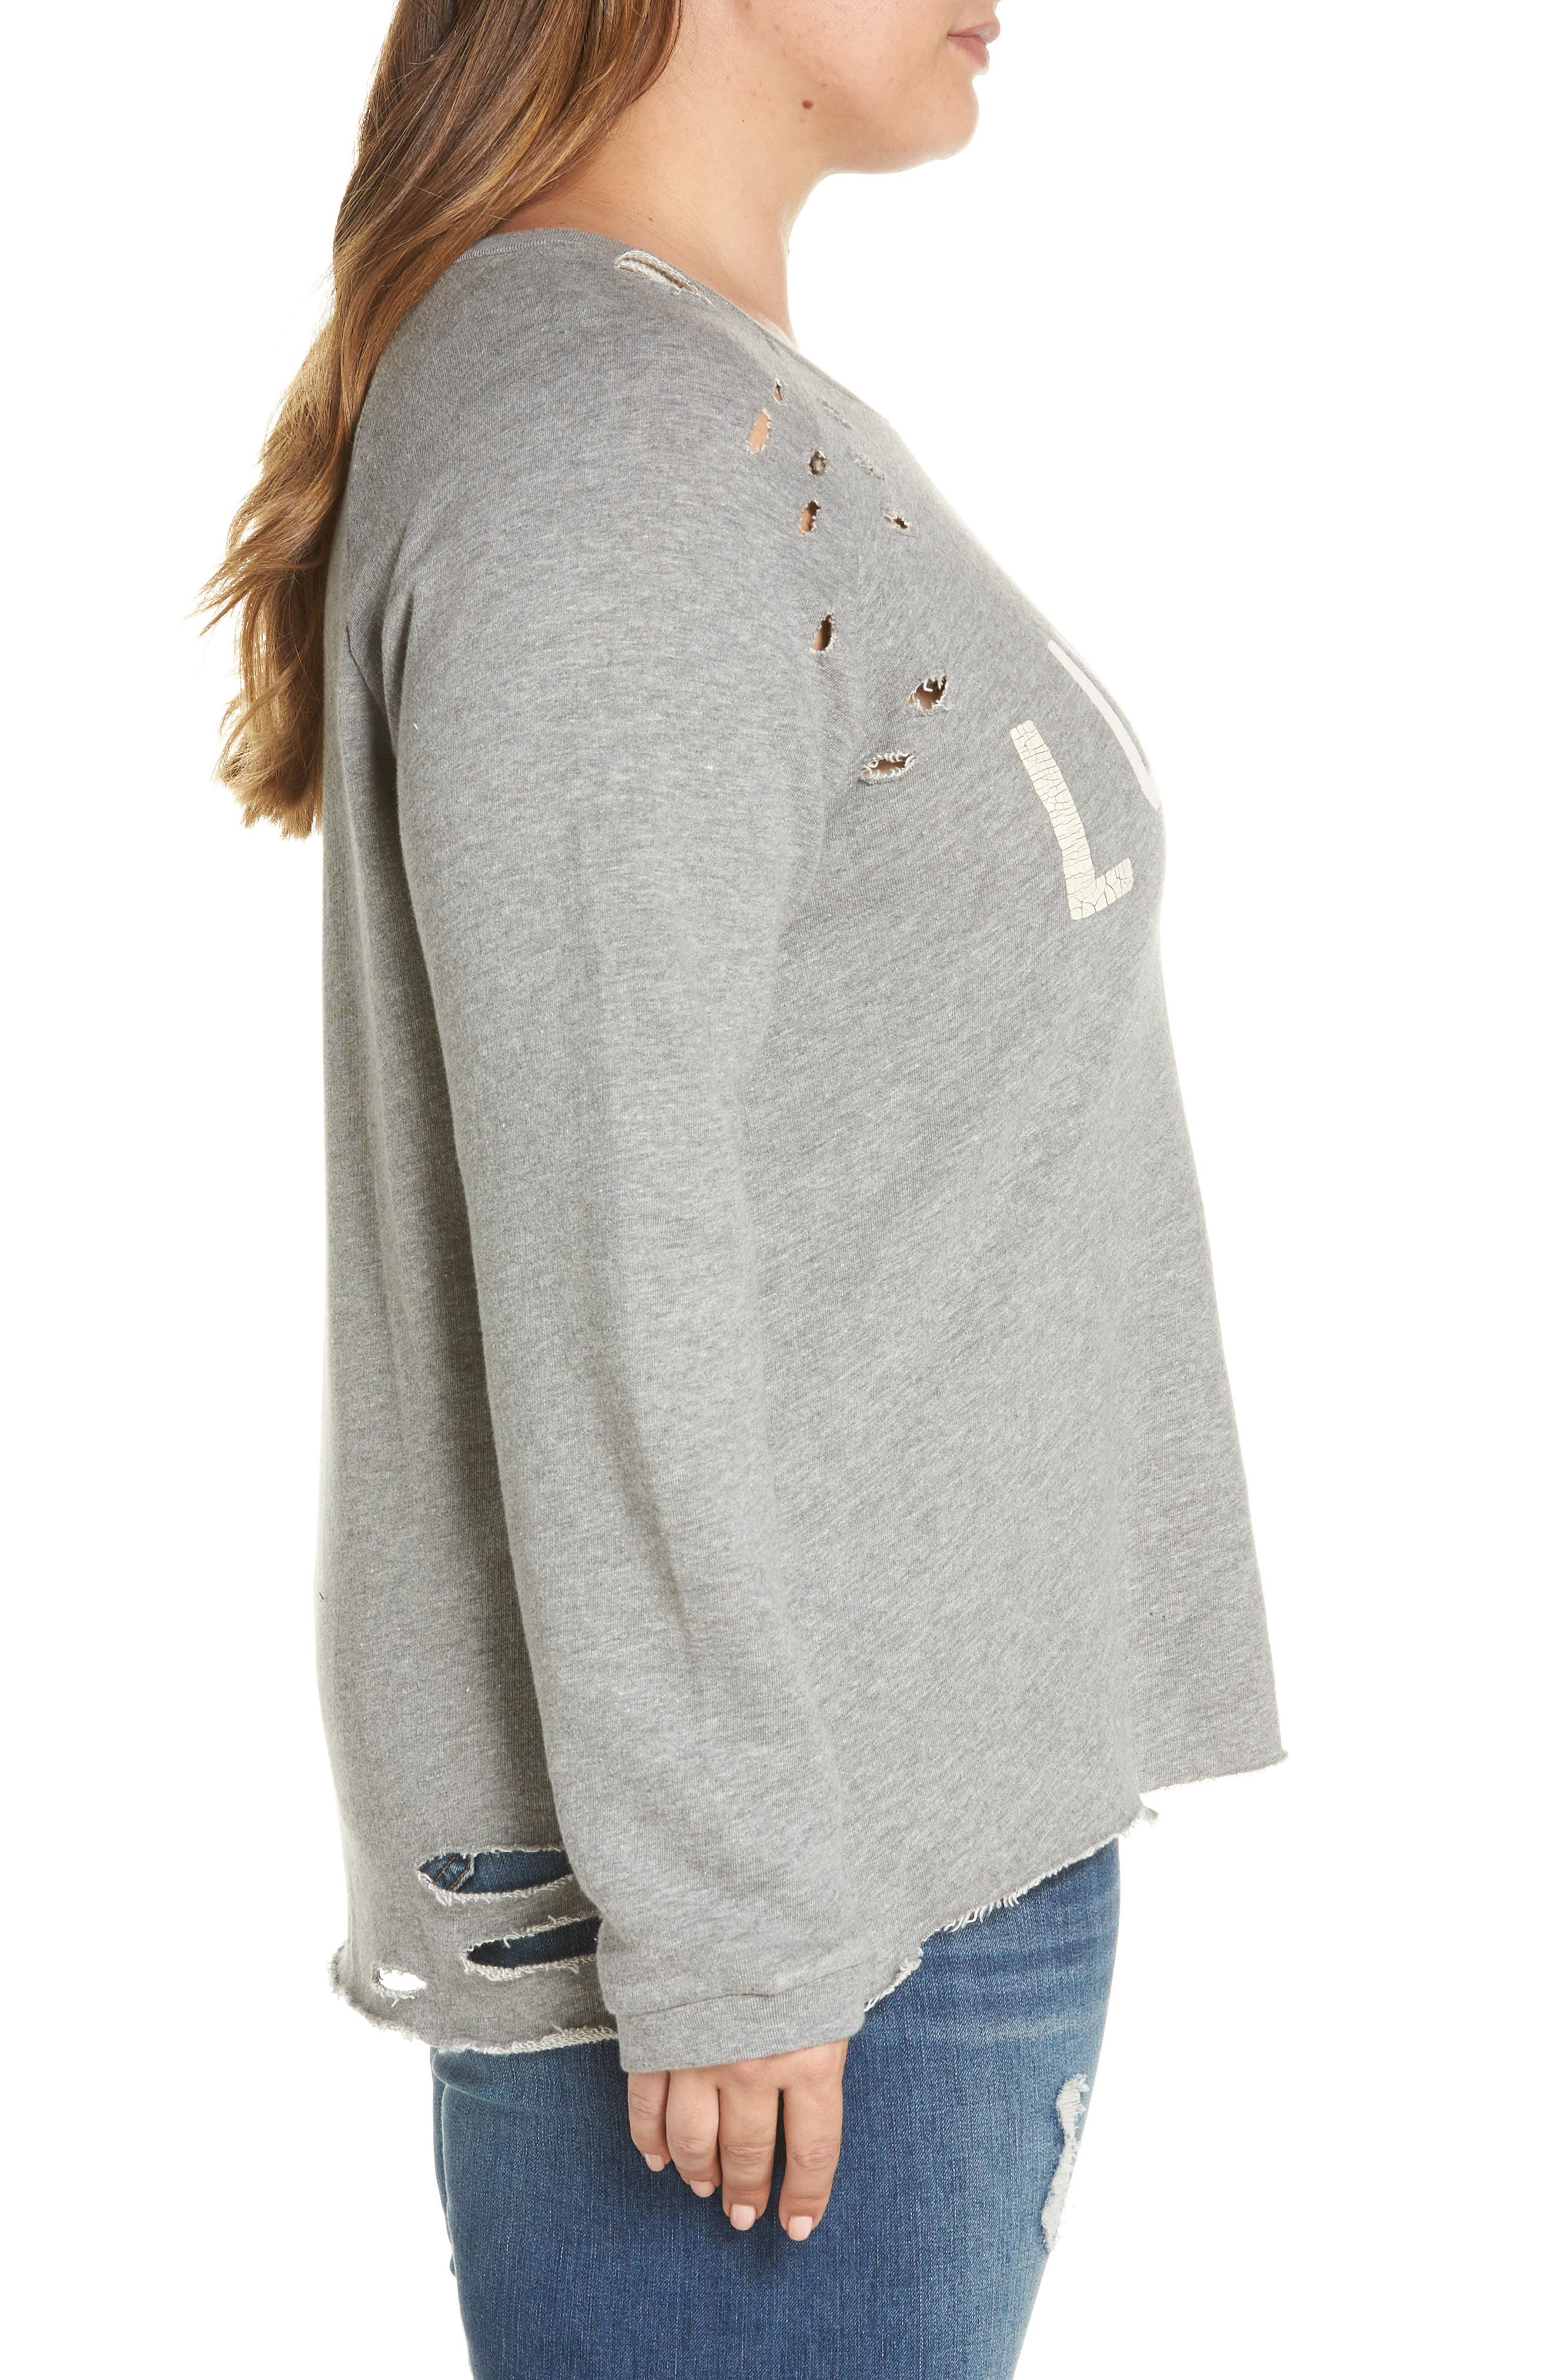 Deconstructed Pullover,                             Alternate thumbnail 3, color,                             Heather Grey